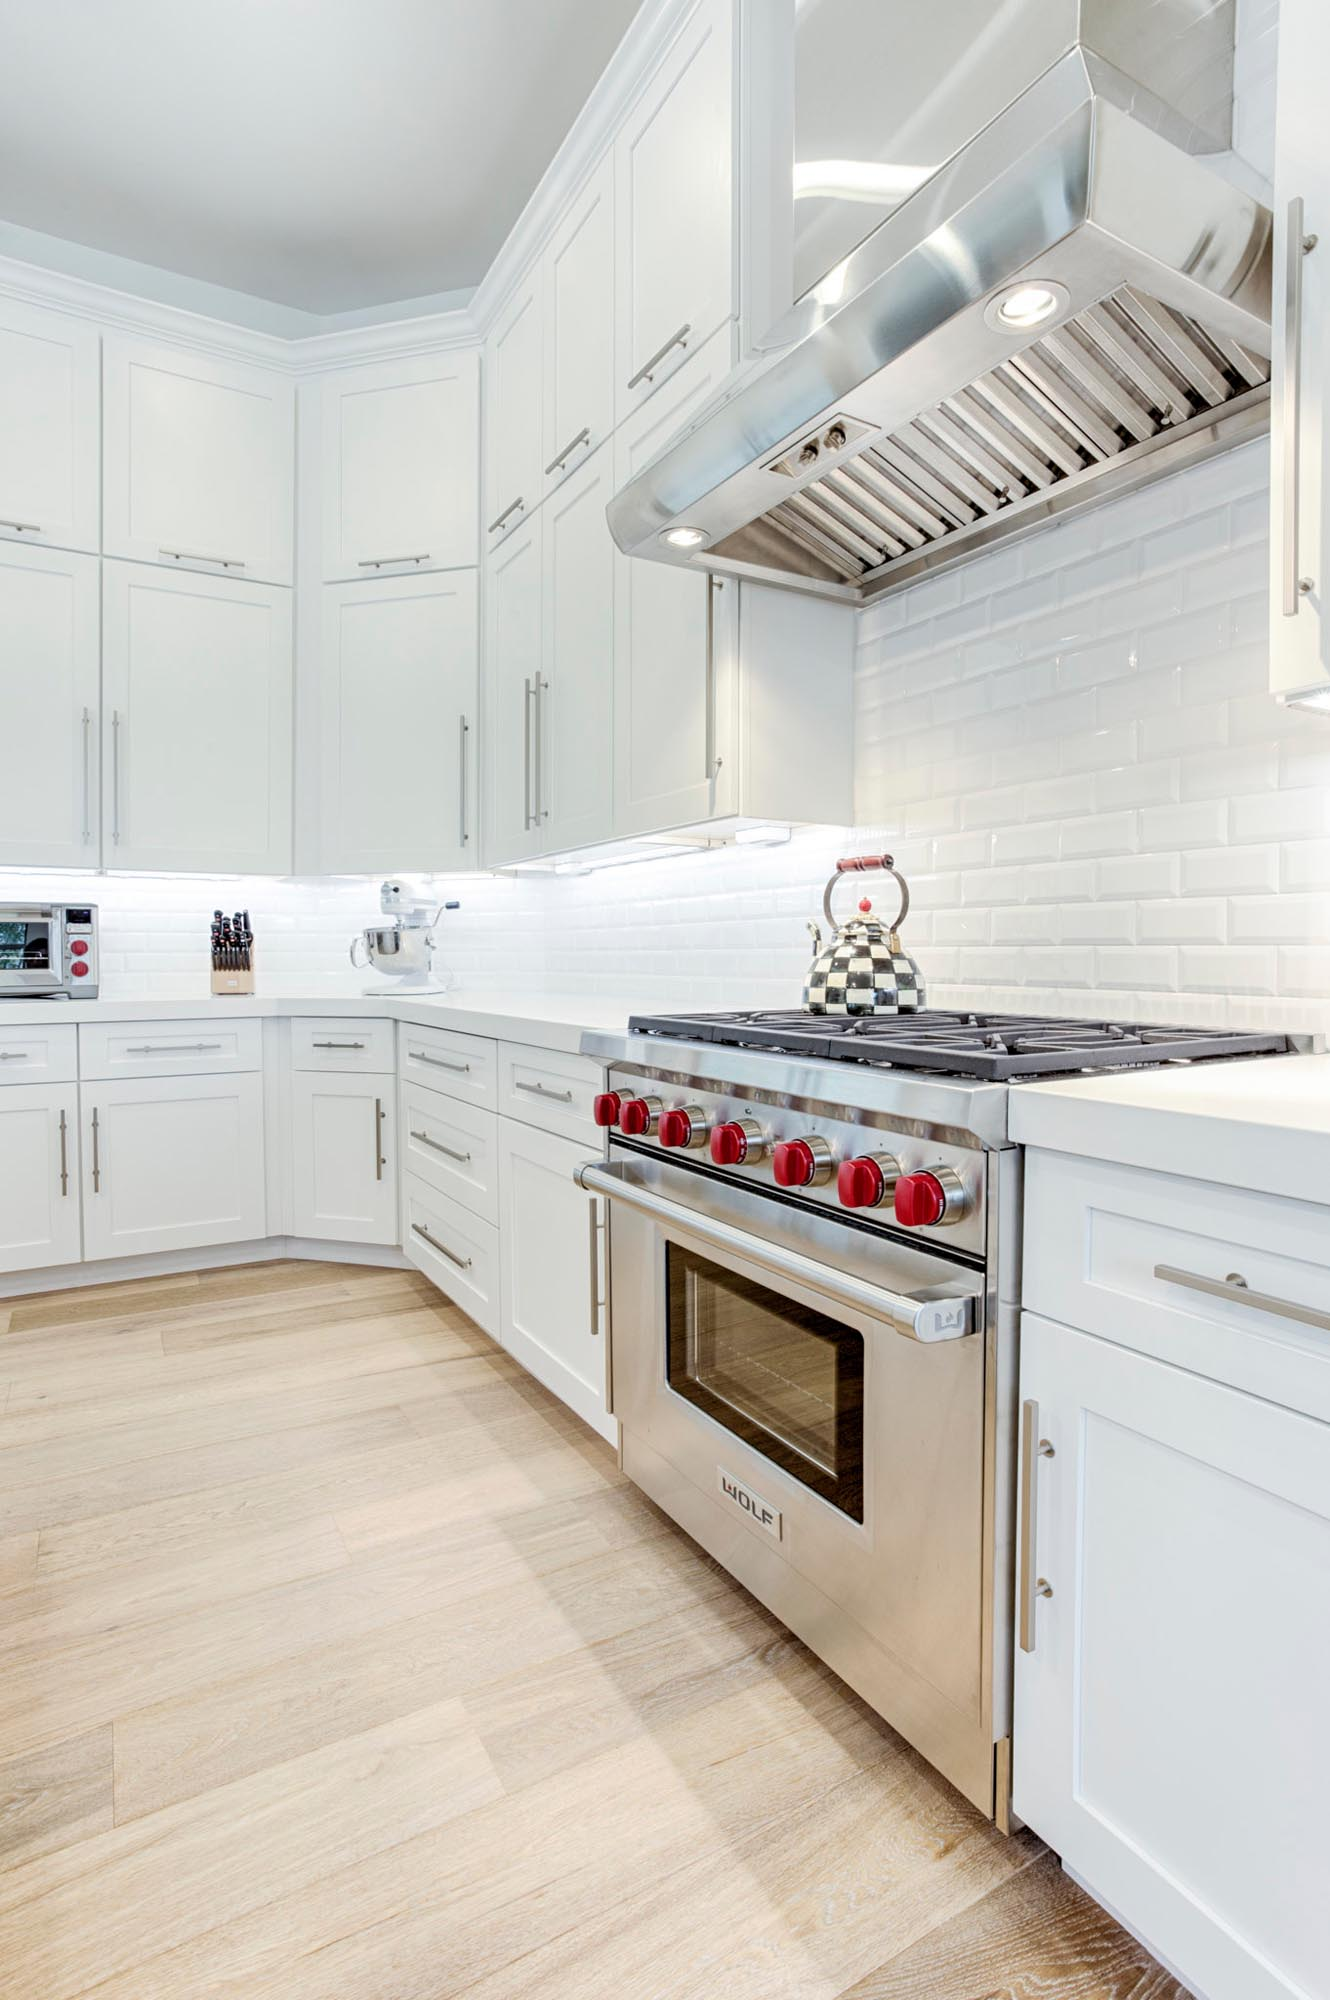 Kitchen white cabinets and stainless steel appliances